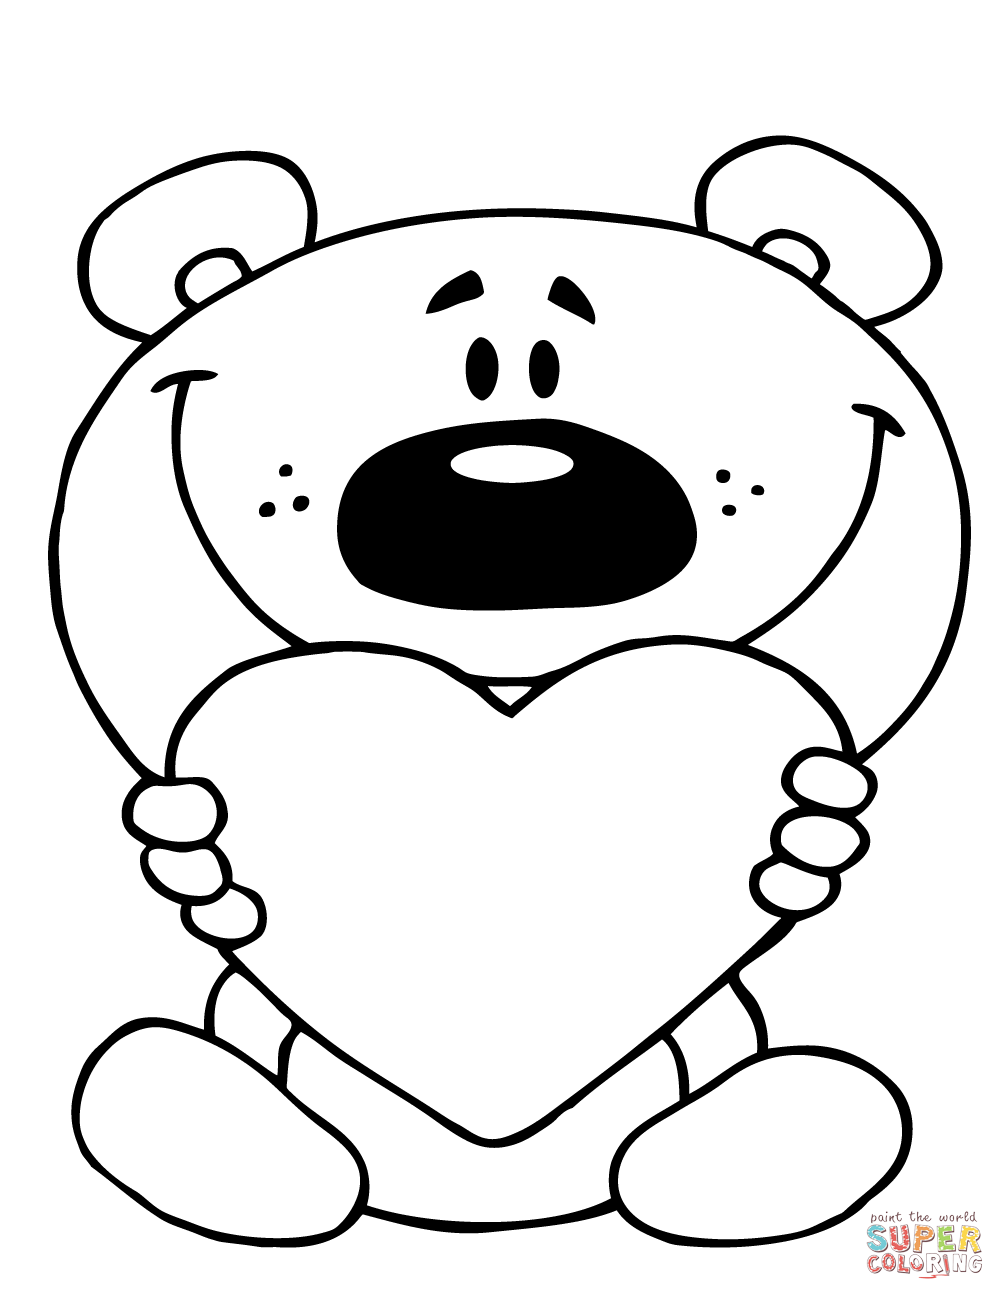 1005x1300 Teddy Bear Holding A Red Heart Coloring Page Free Printable